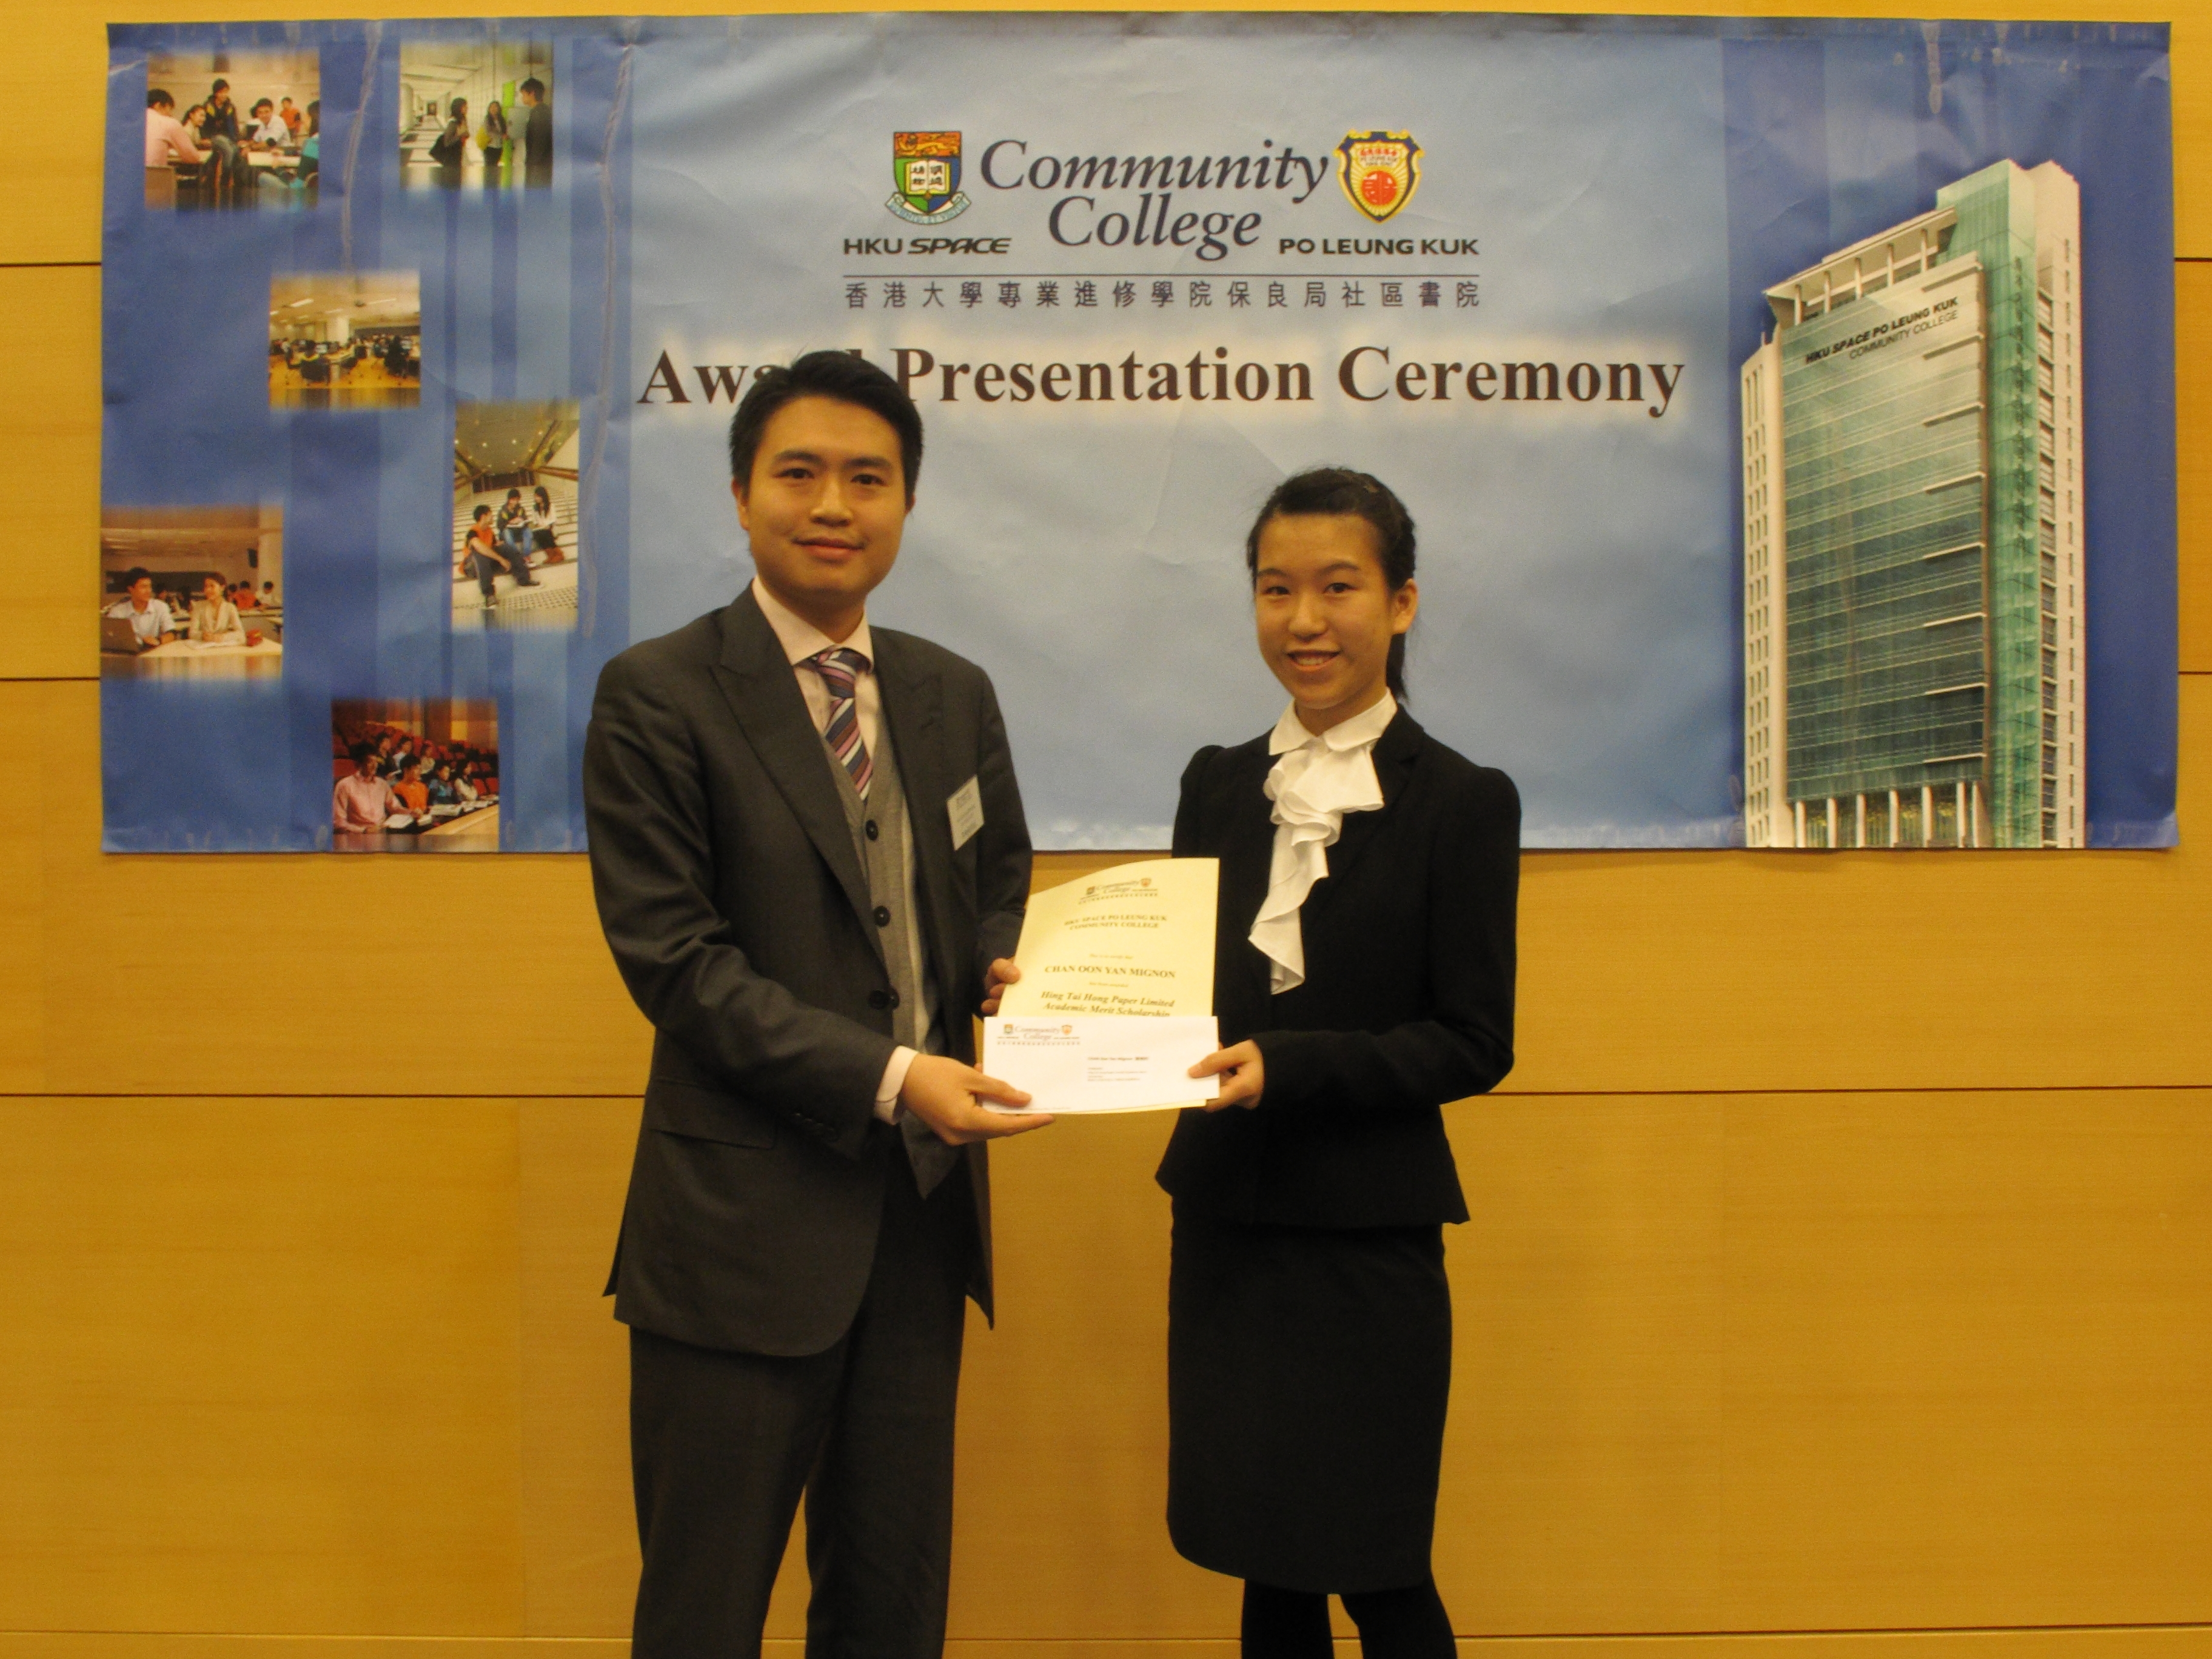 Award Presentation Ceremony 2011 - Photo - 5